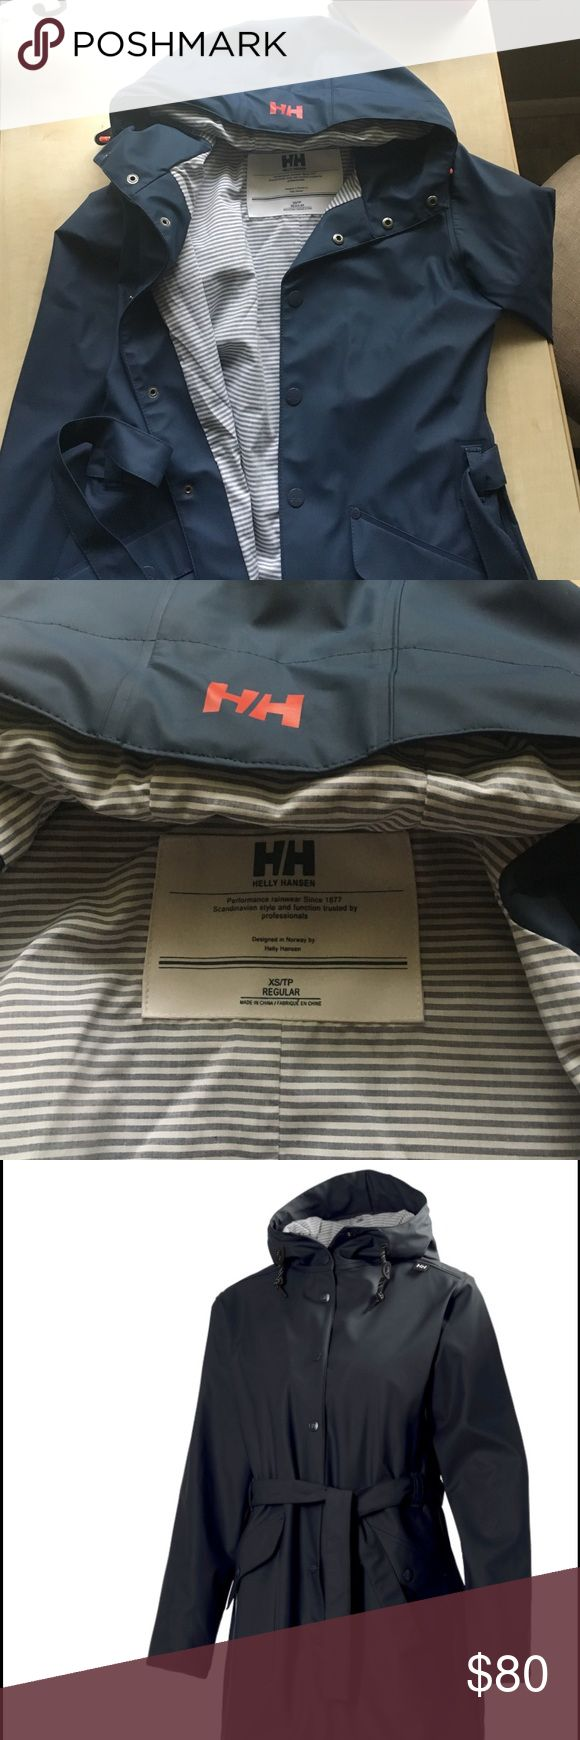 Helly Hansen Kirkwall Raincoat Like new navy blue Kirkwall rain jacket! Only worn a few times. White and light blue striped interior. Size xs. Super cute and slimming fit! Last photo is just to show the whole jacket, not actual photo :) Helly Hansen Jackets & Coats Trench Coats